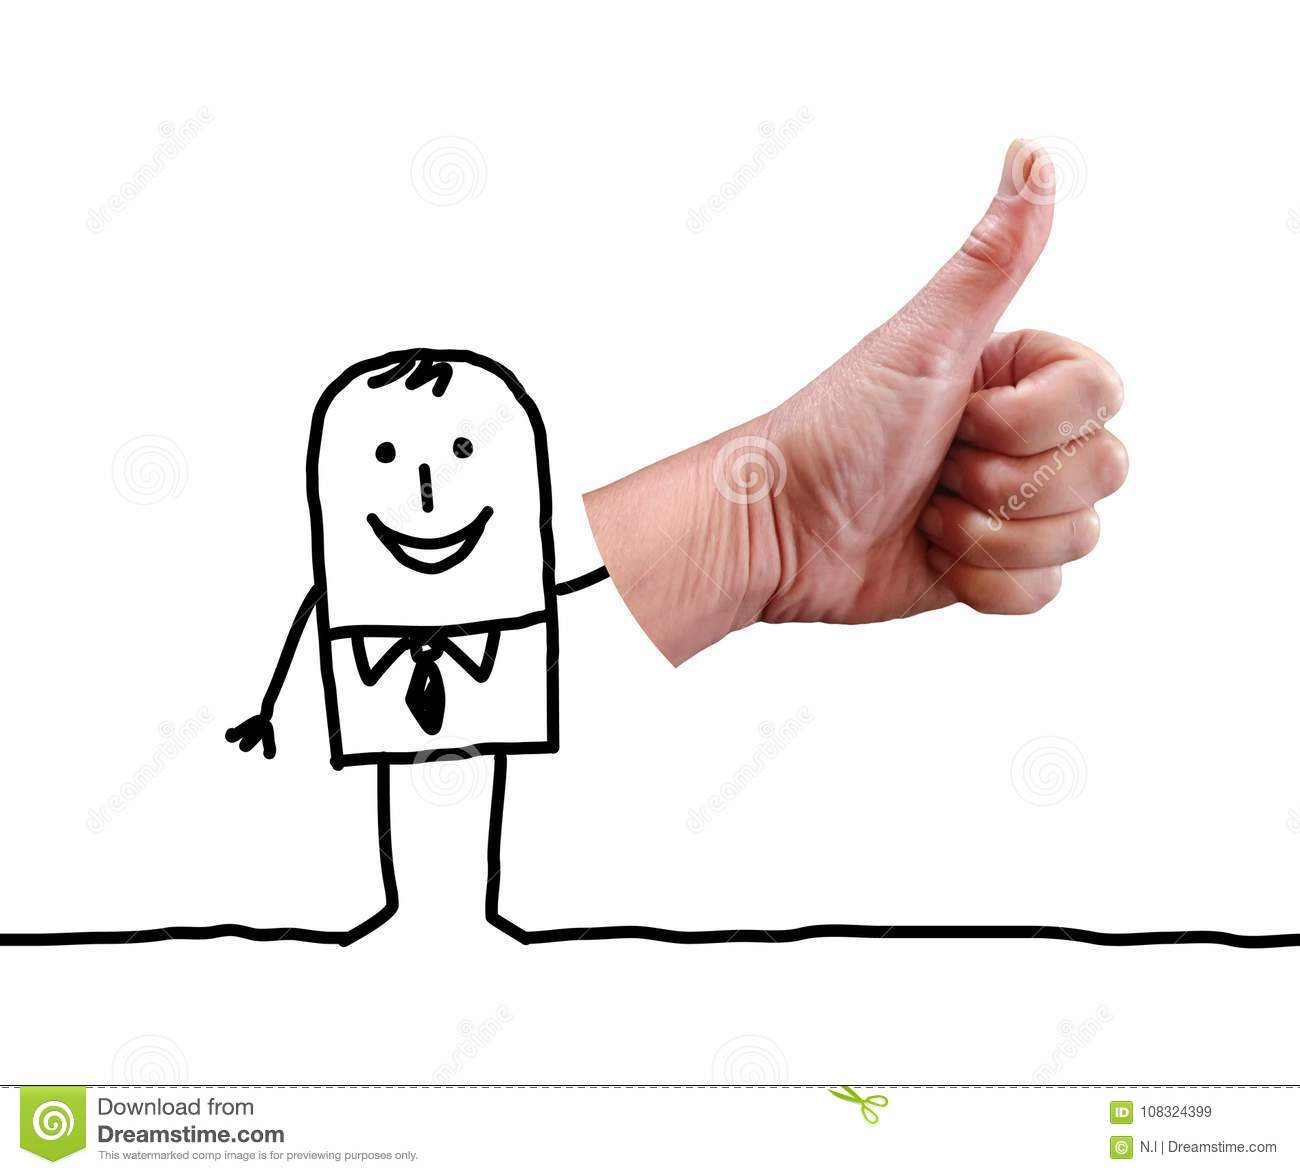 318 cartoon thumb photos free royalty free stock photos from dreamstime dreamstime com